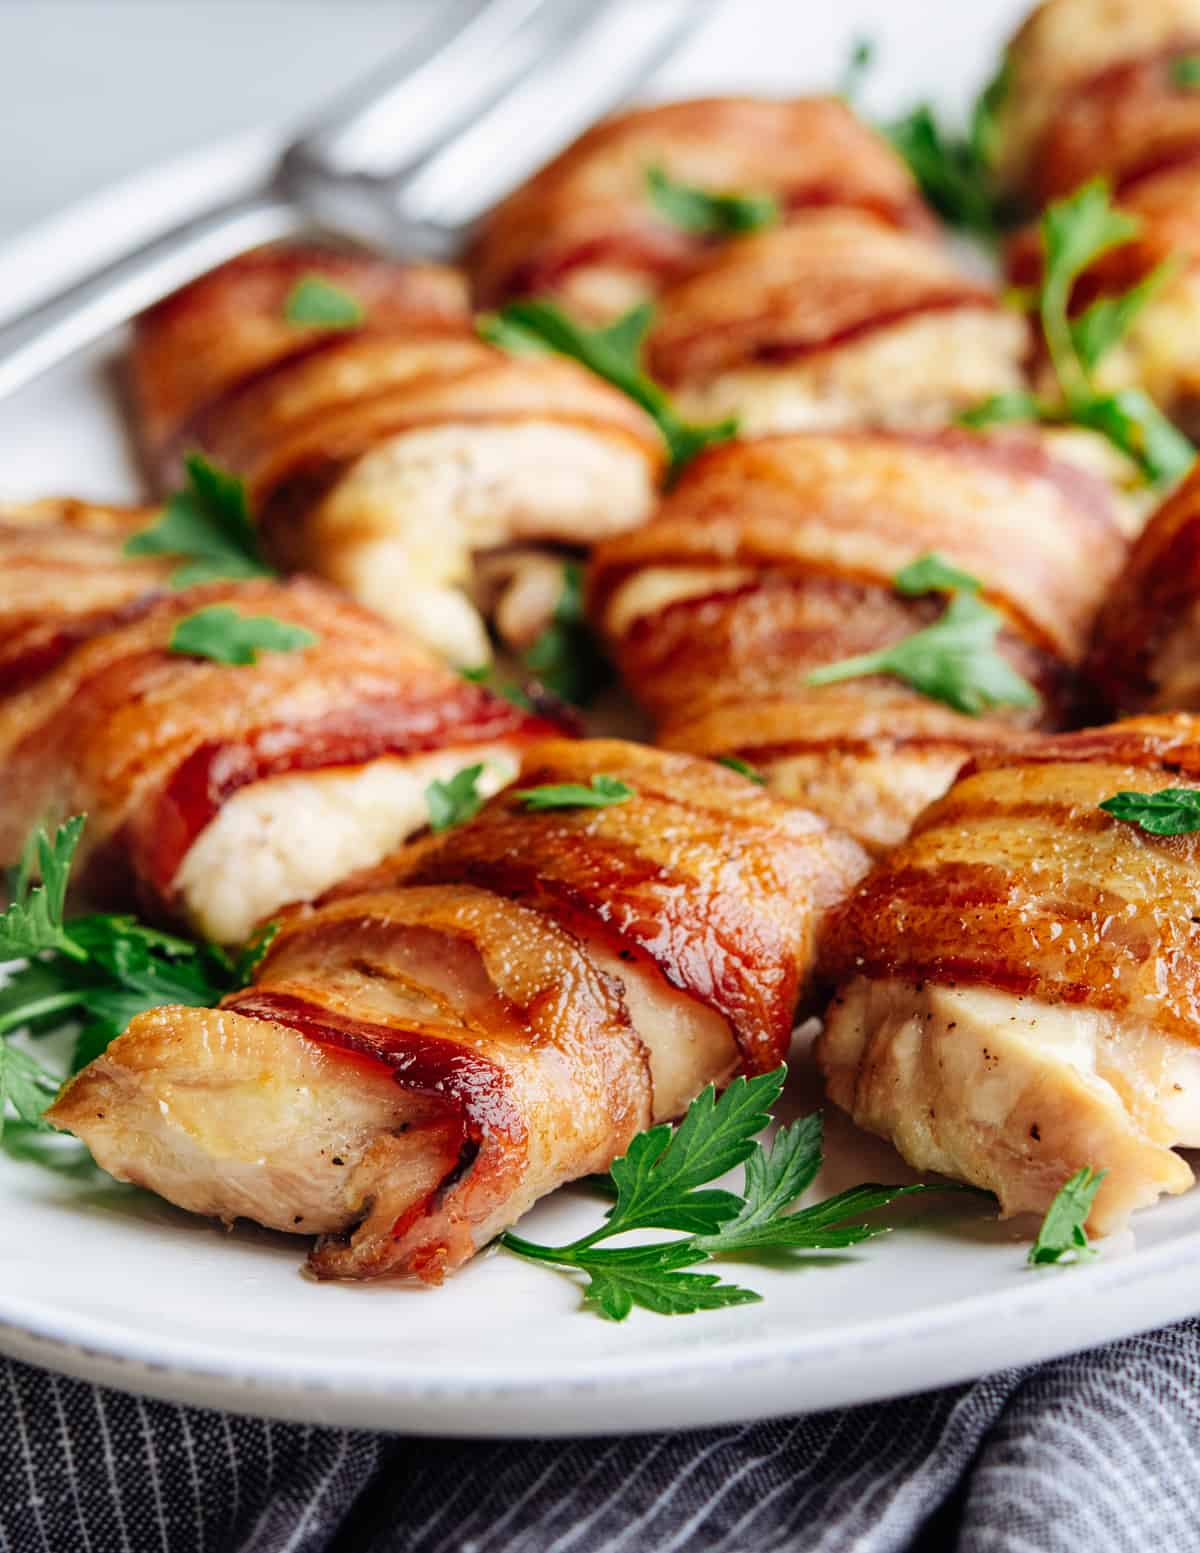 Bacon Wrapped Chicken Thighs served on a white oval platter.